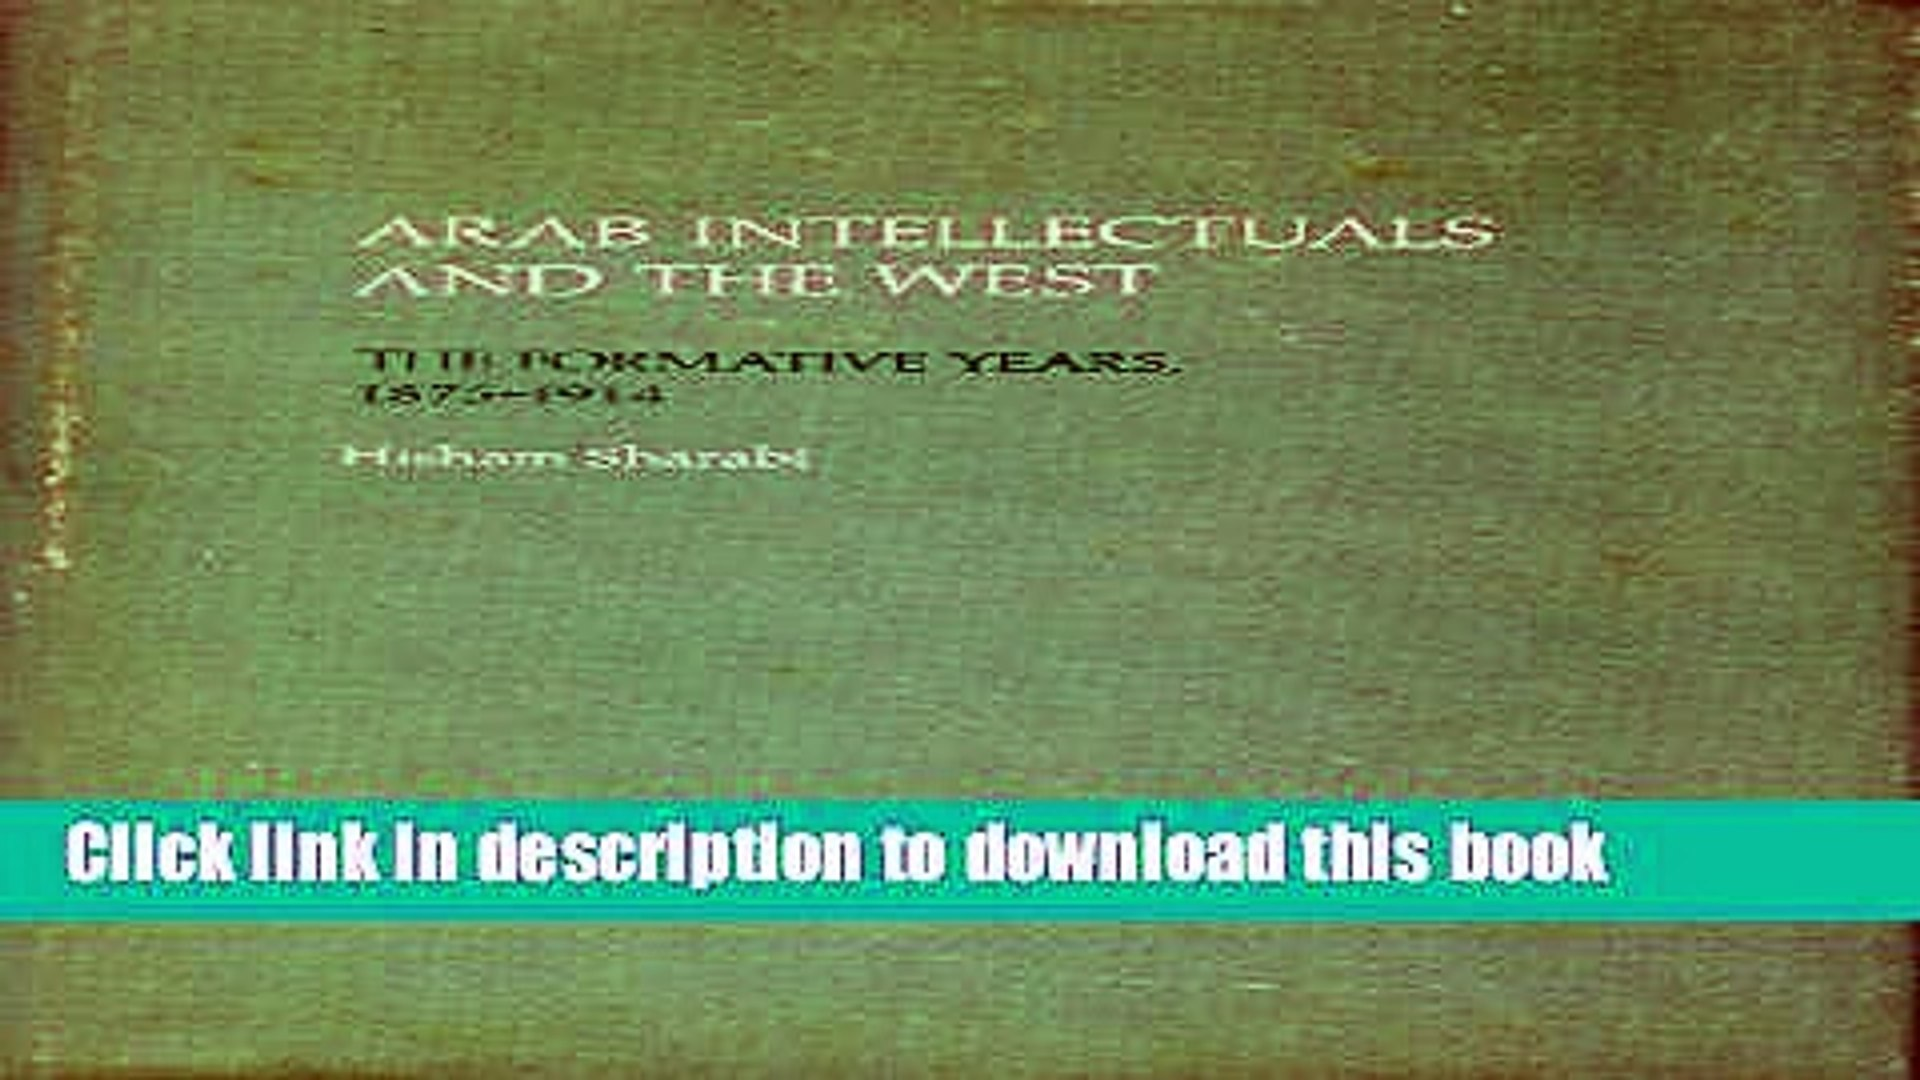 Read Arab Intellectuals and the West: The Formative Years, 1875-1914  Ebook Free